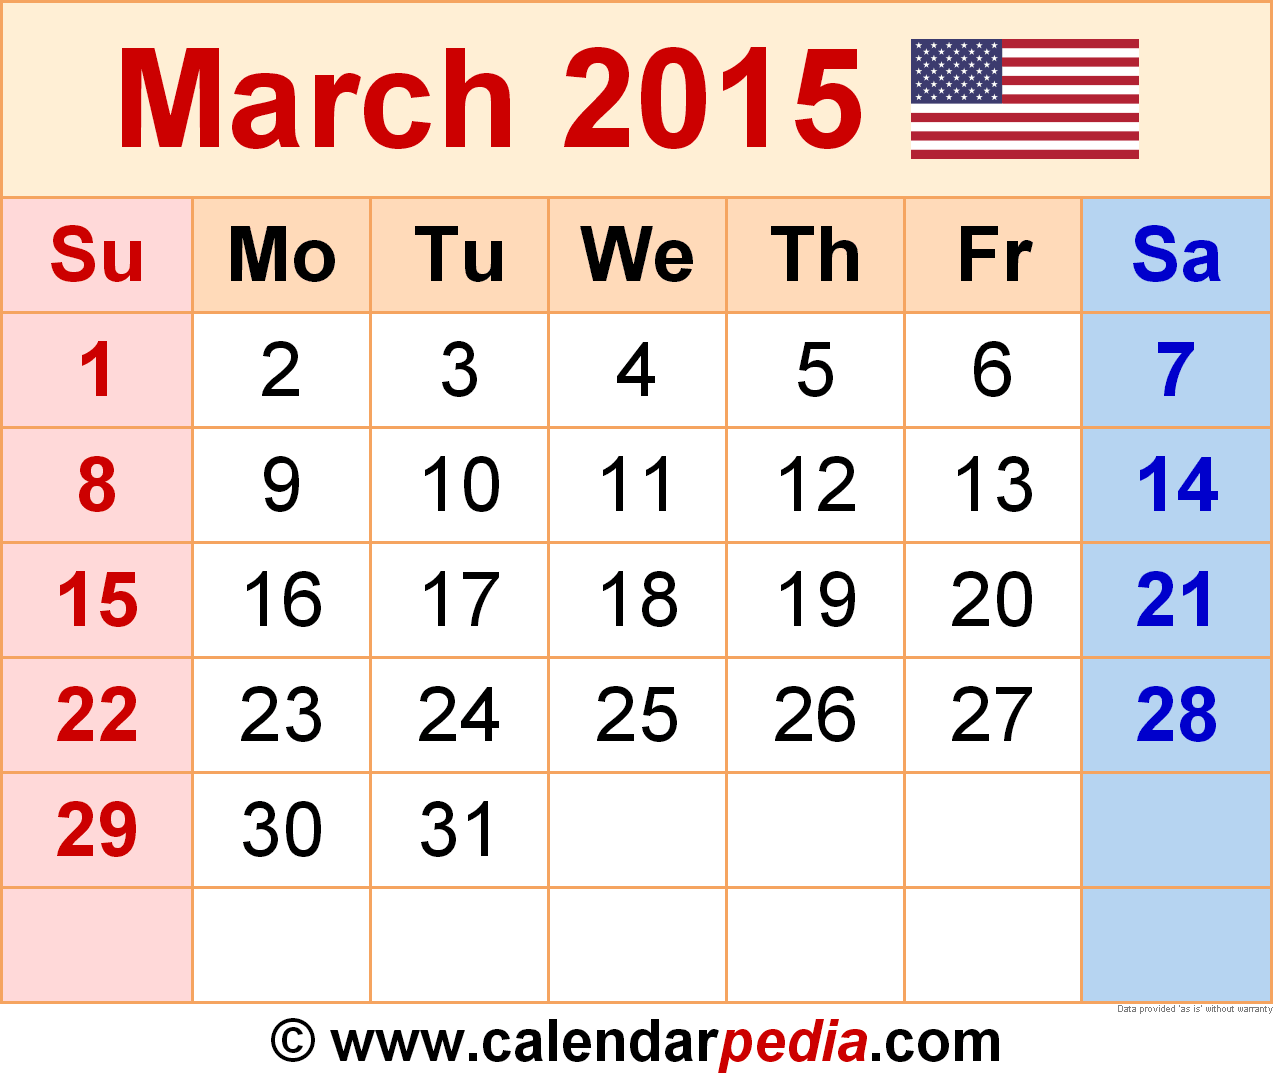 2015 March Calendar March 2015 Calendar As A Graphicimage File In